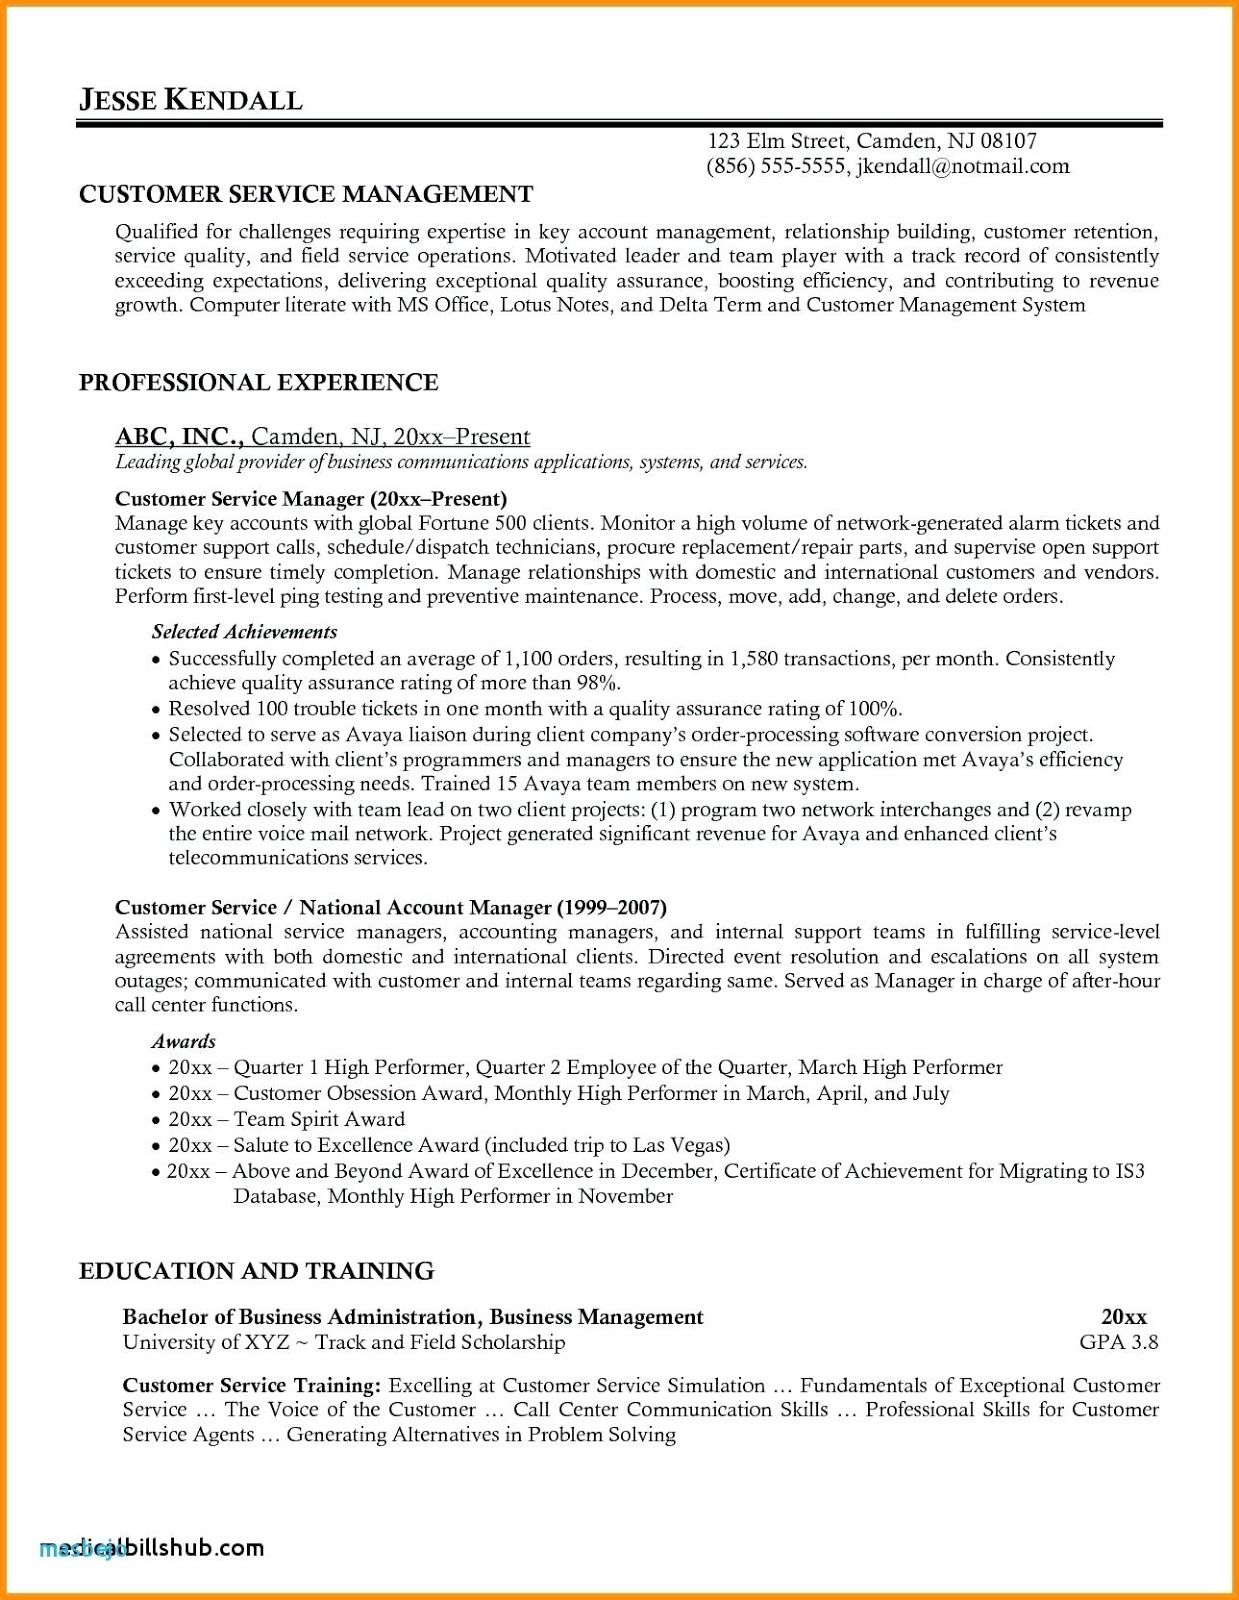 Retail Manager Cover Letter Examples, retail manager cover